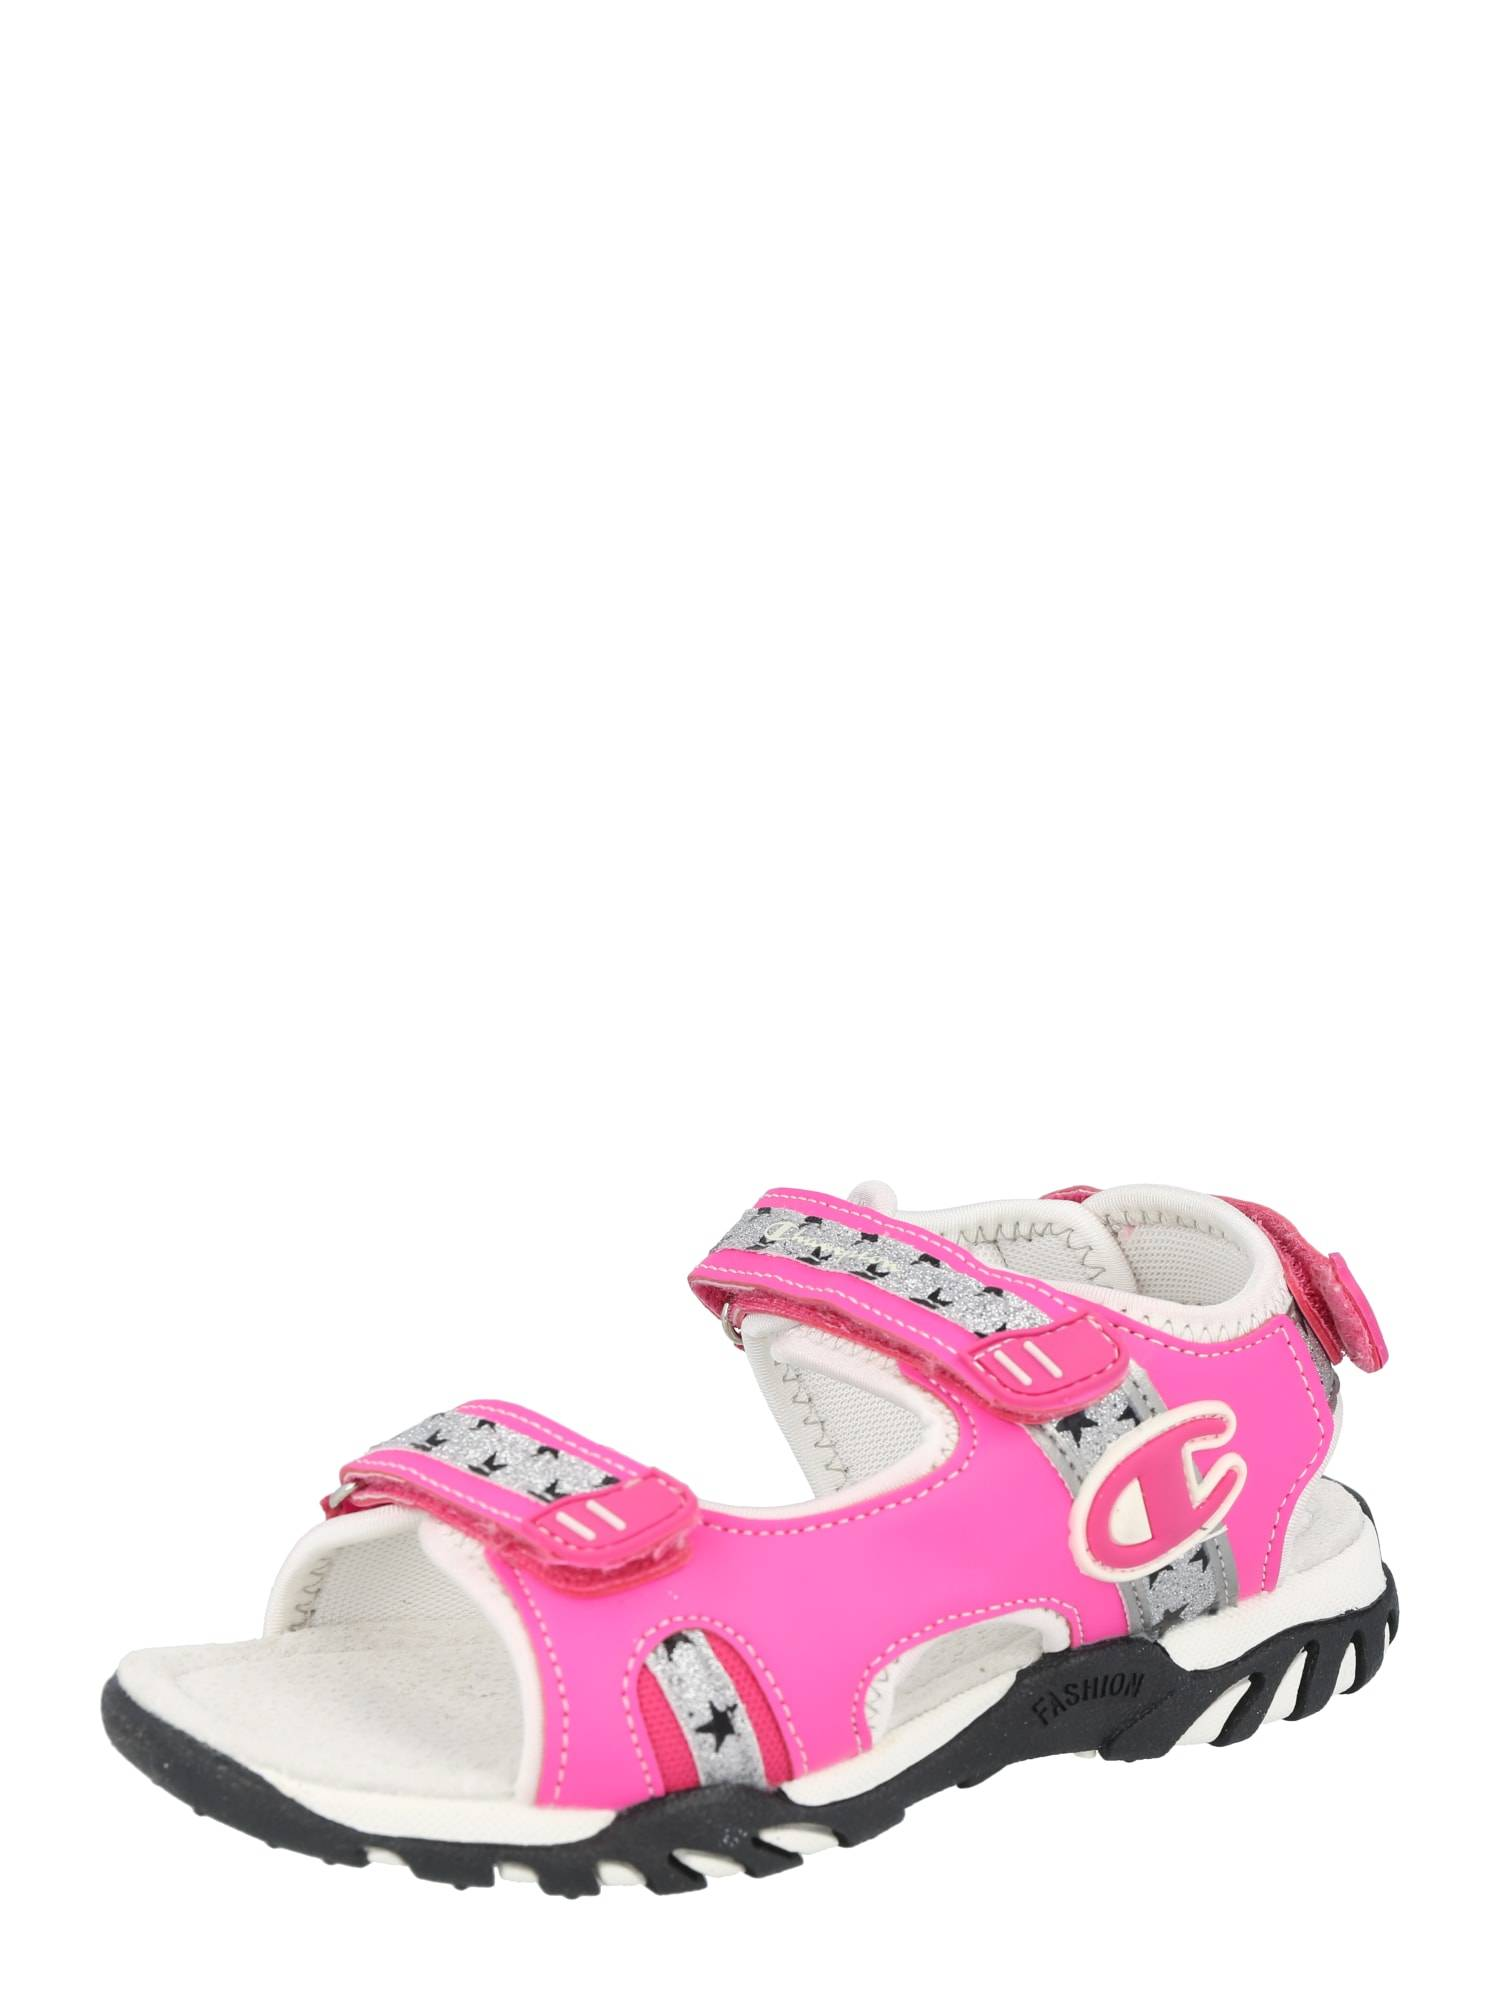 Champion Authentic Athletic Apparel Sandales 'FLORIDA'  - Rose - Taille: 32 - girl